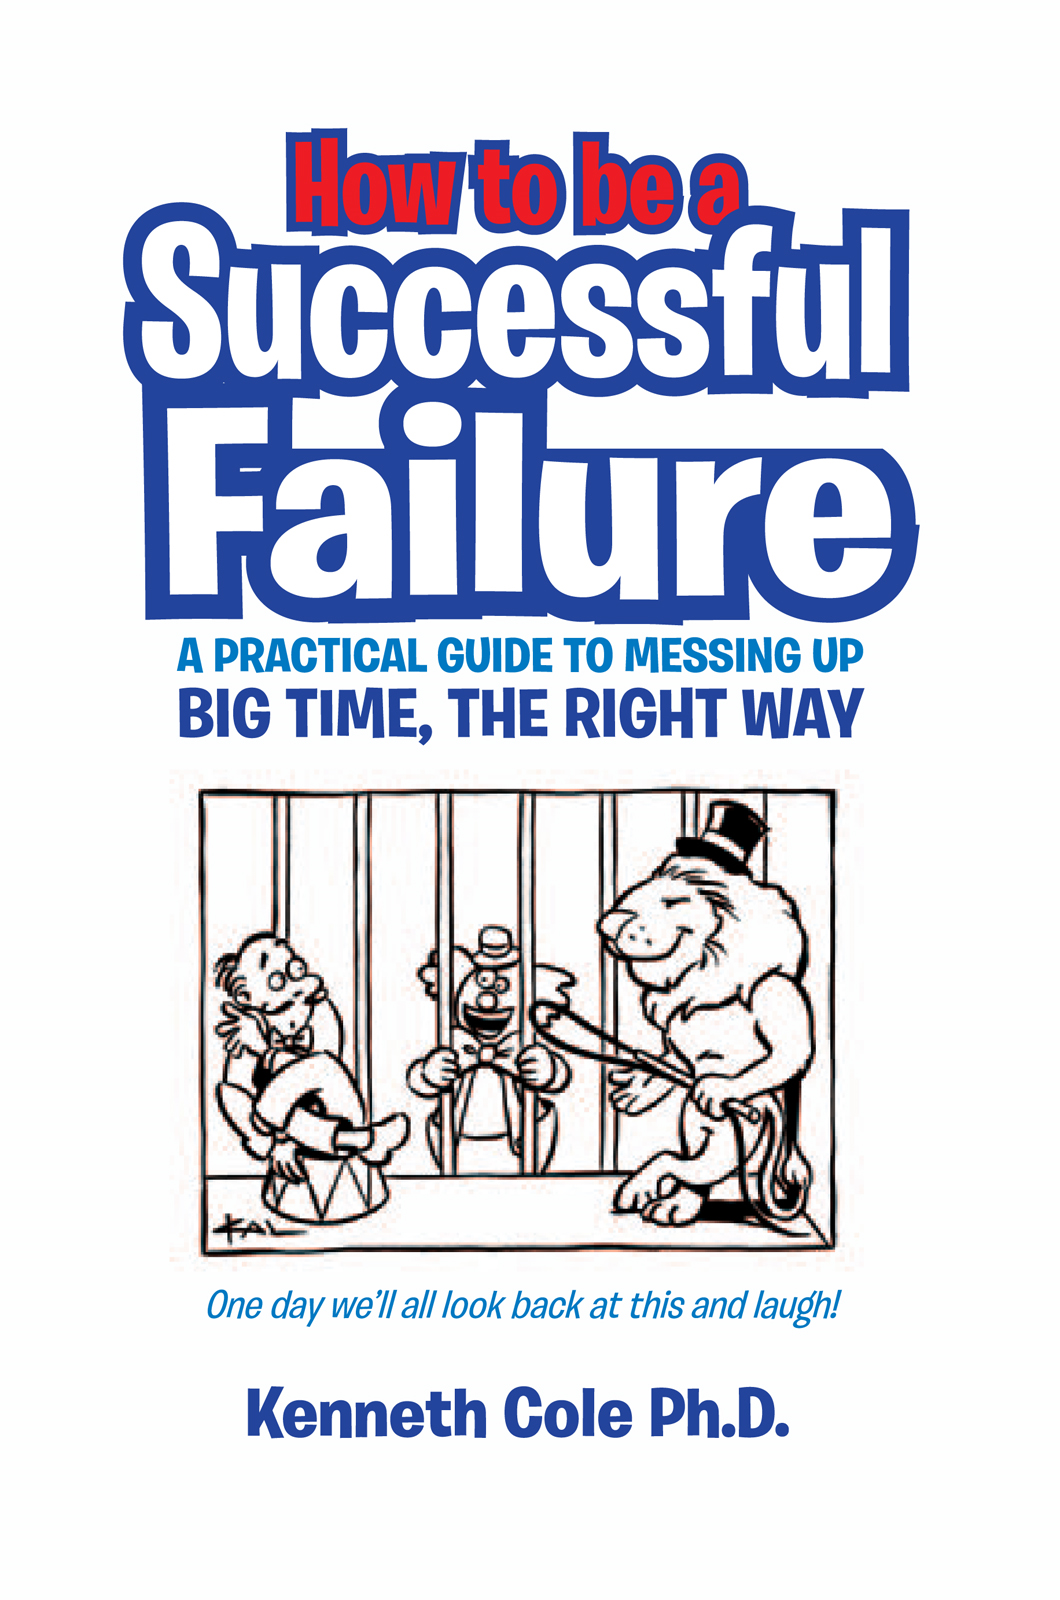 HOW TO BE A SUCCESSFUL FAILURE